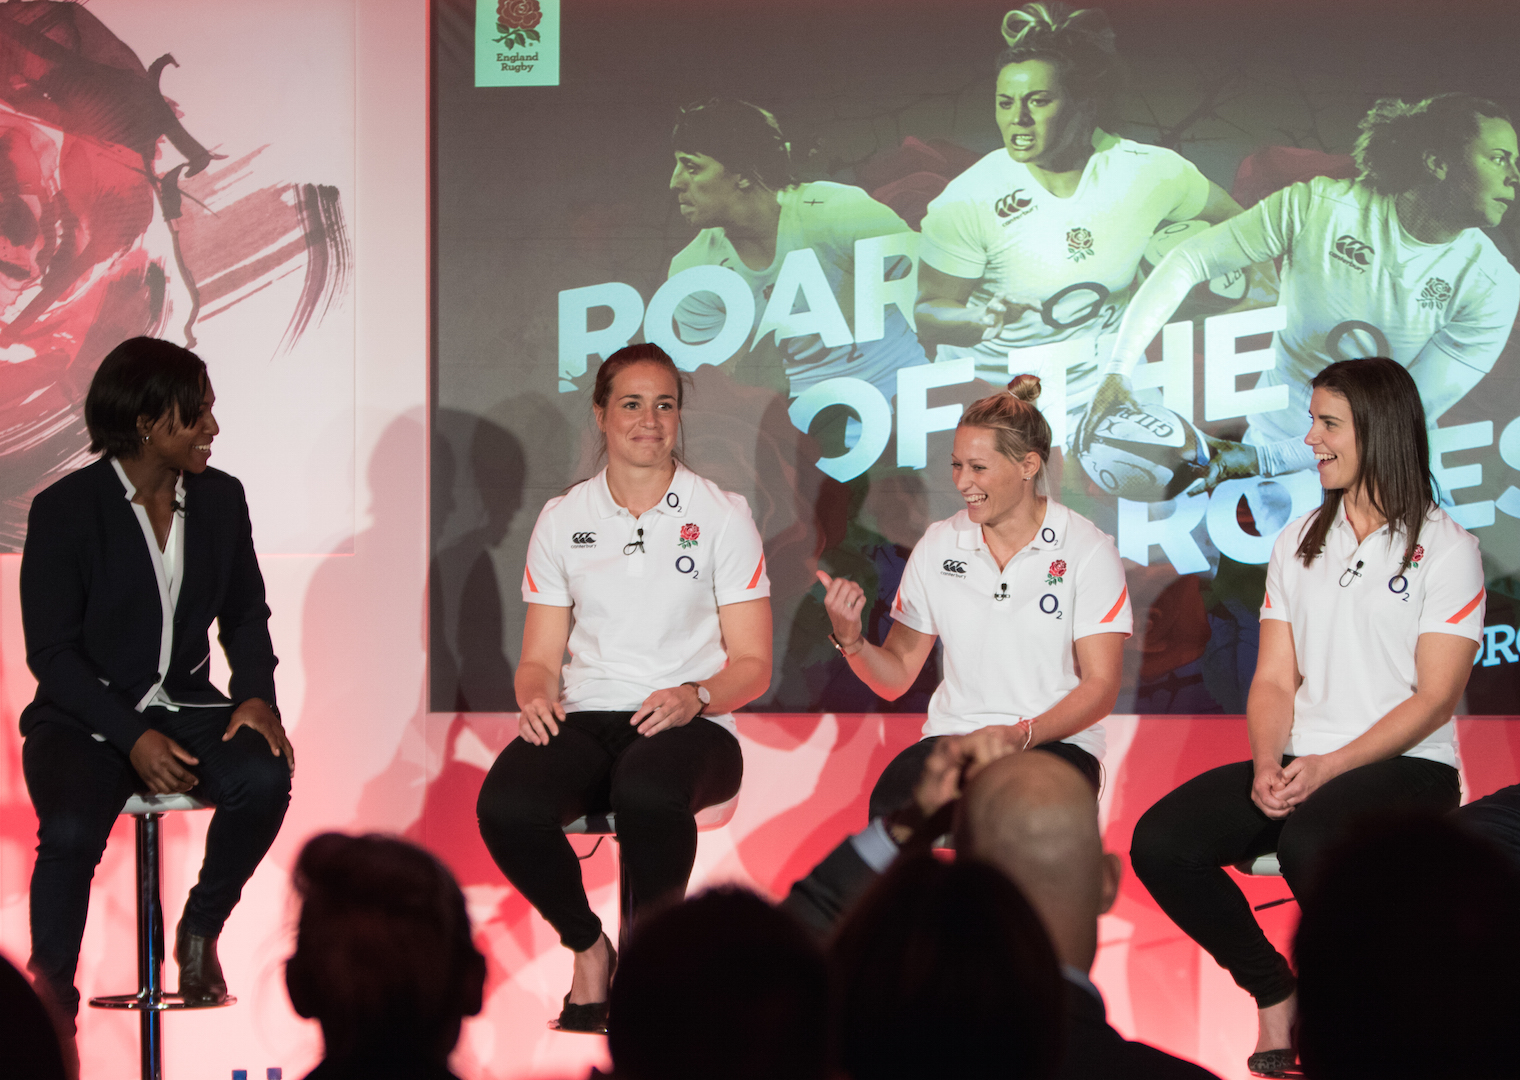 London, UK. 05th October 2016. (l-r) Former England international Maggie Alphonsi, England stars Emily Scarratt, Natasha hunt and Sarah Hunter at the media briefing for the unveiling of the new vision for women's rugby in England as part of Women's Sport Week (3 - 9 October 2016). Also present were RFU Director of Rugby Development Steve Grainger and RFU Professional Rugby Director Nigel Melville. © Elsie Kibue